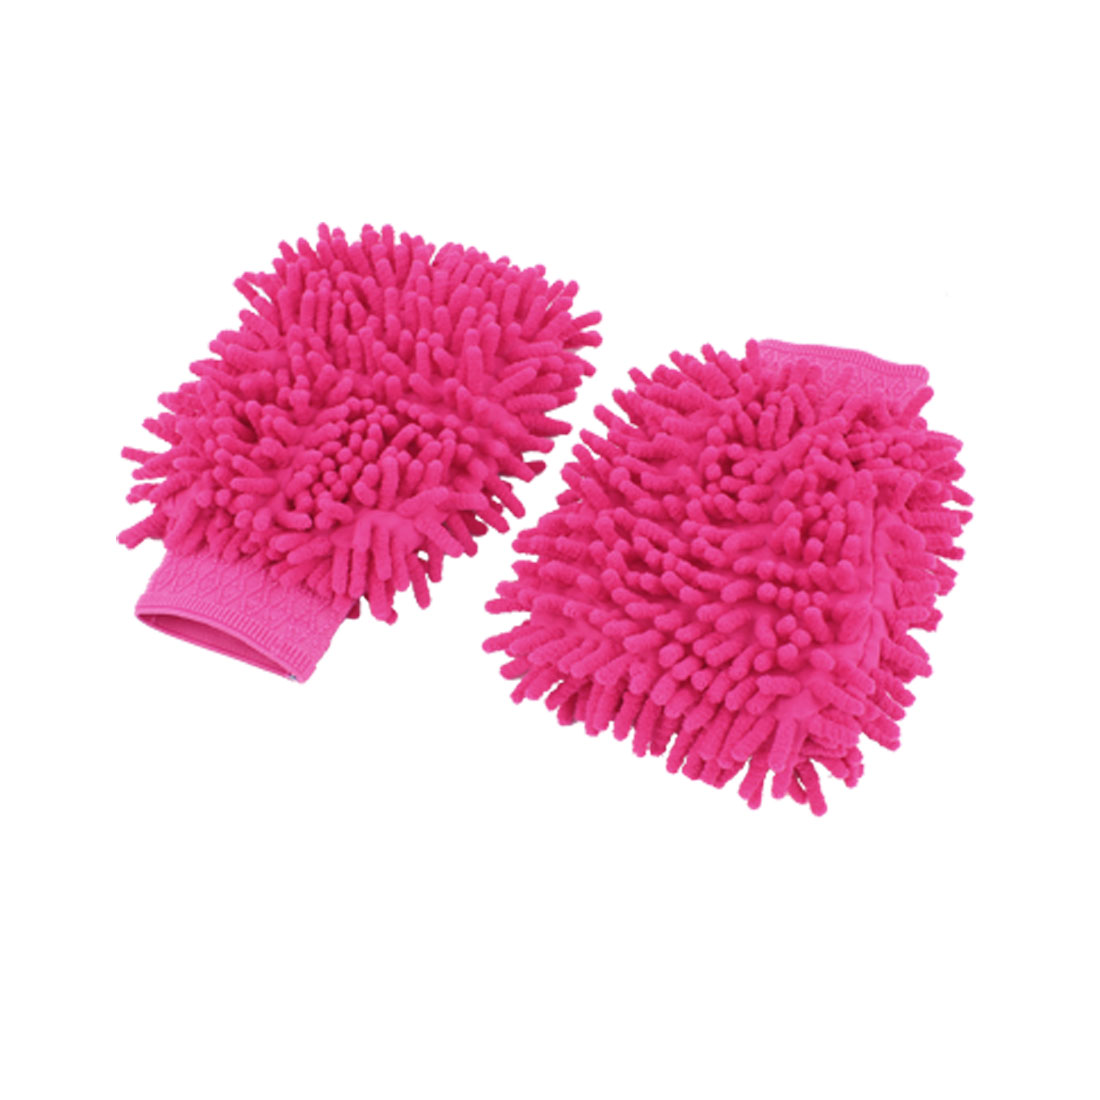 Car Window Wash Cleaning Cloth Duster Towel Mitt Gloves Fuchsia 2PCS